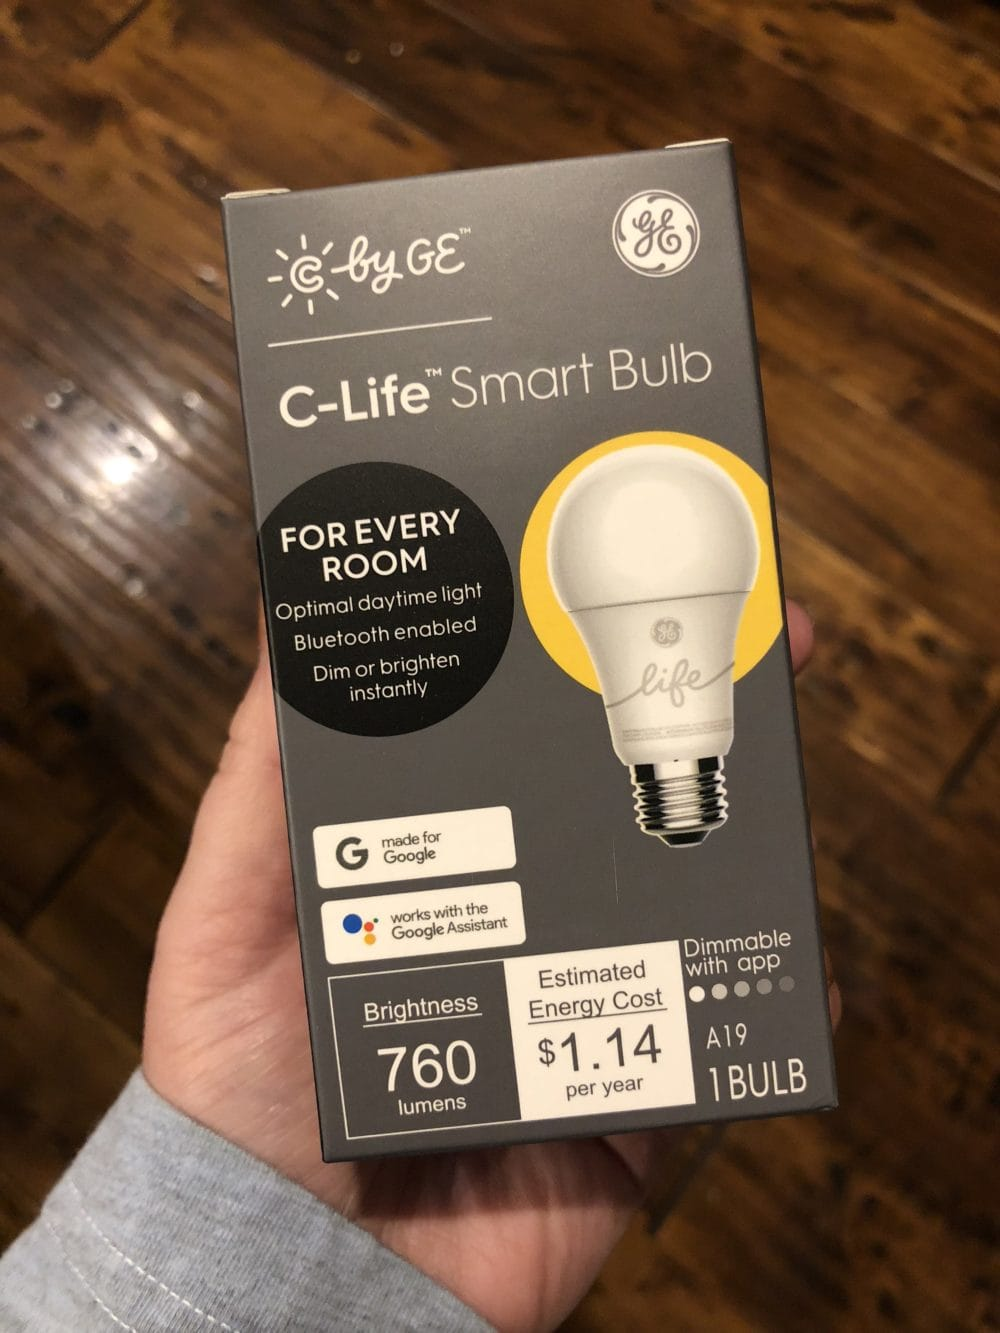 C-Lite - Get Connected with the Google Smart Light Starter Kit with Google Assistant